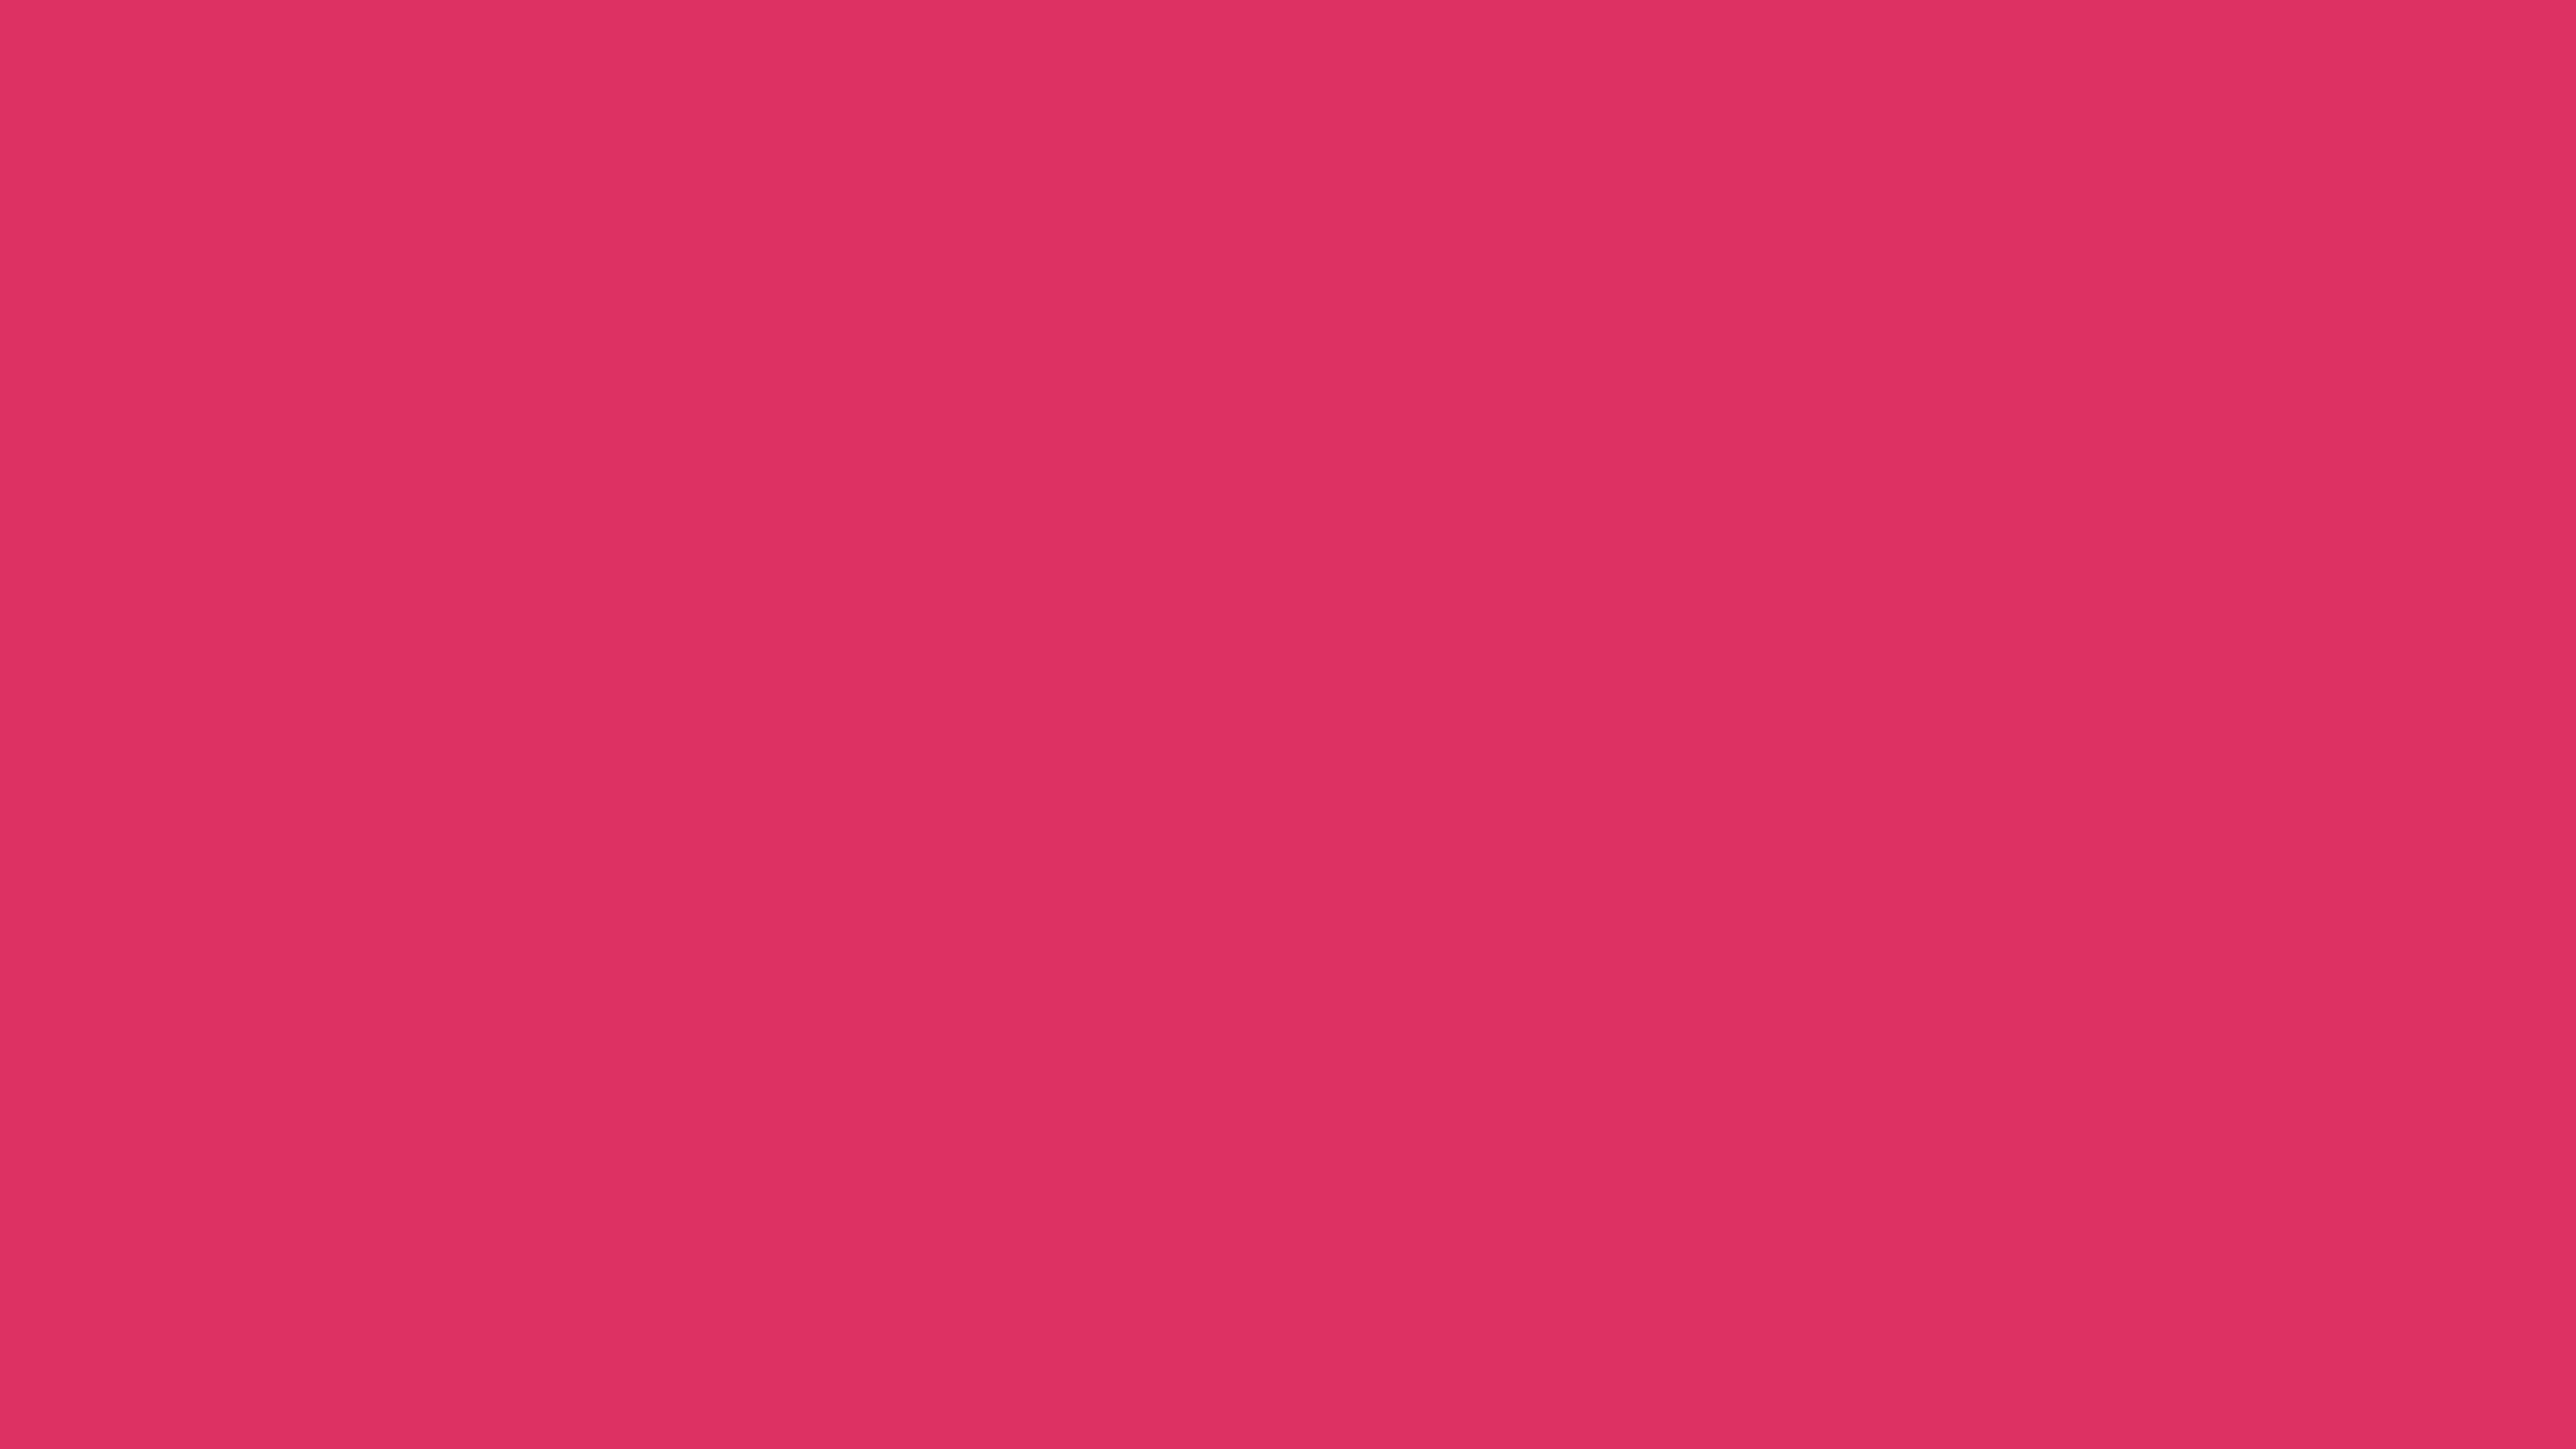 4096x2304 Cherry Solid Color Background